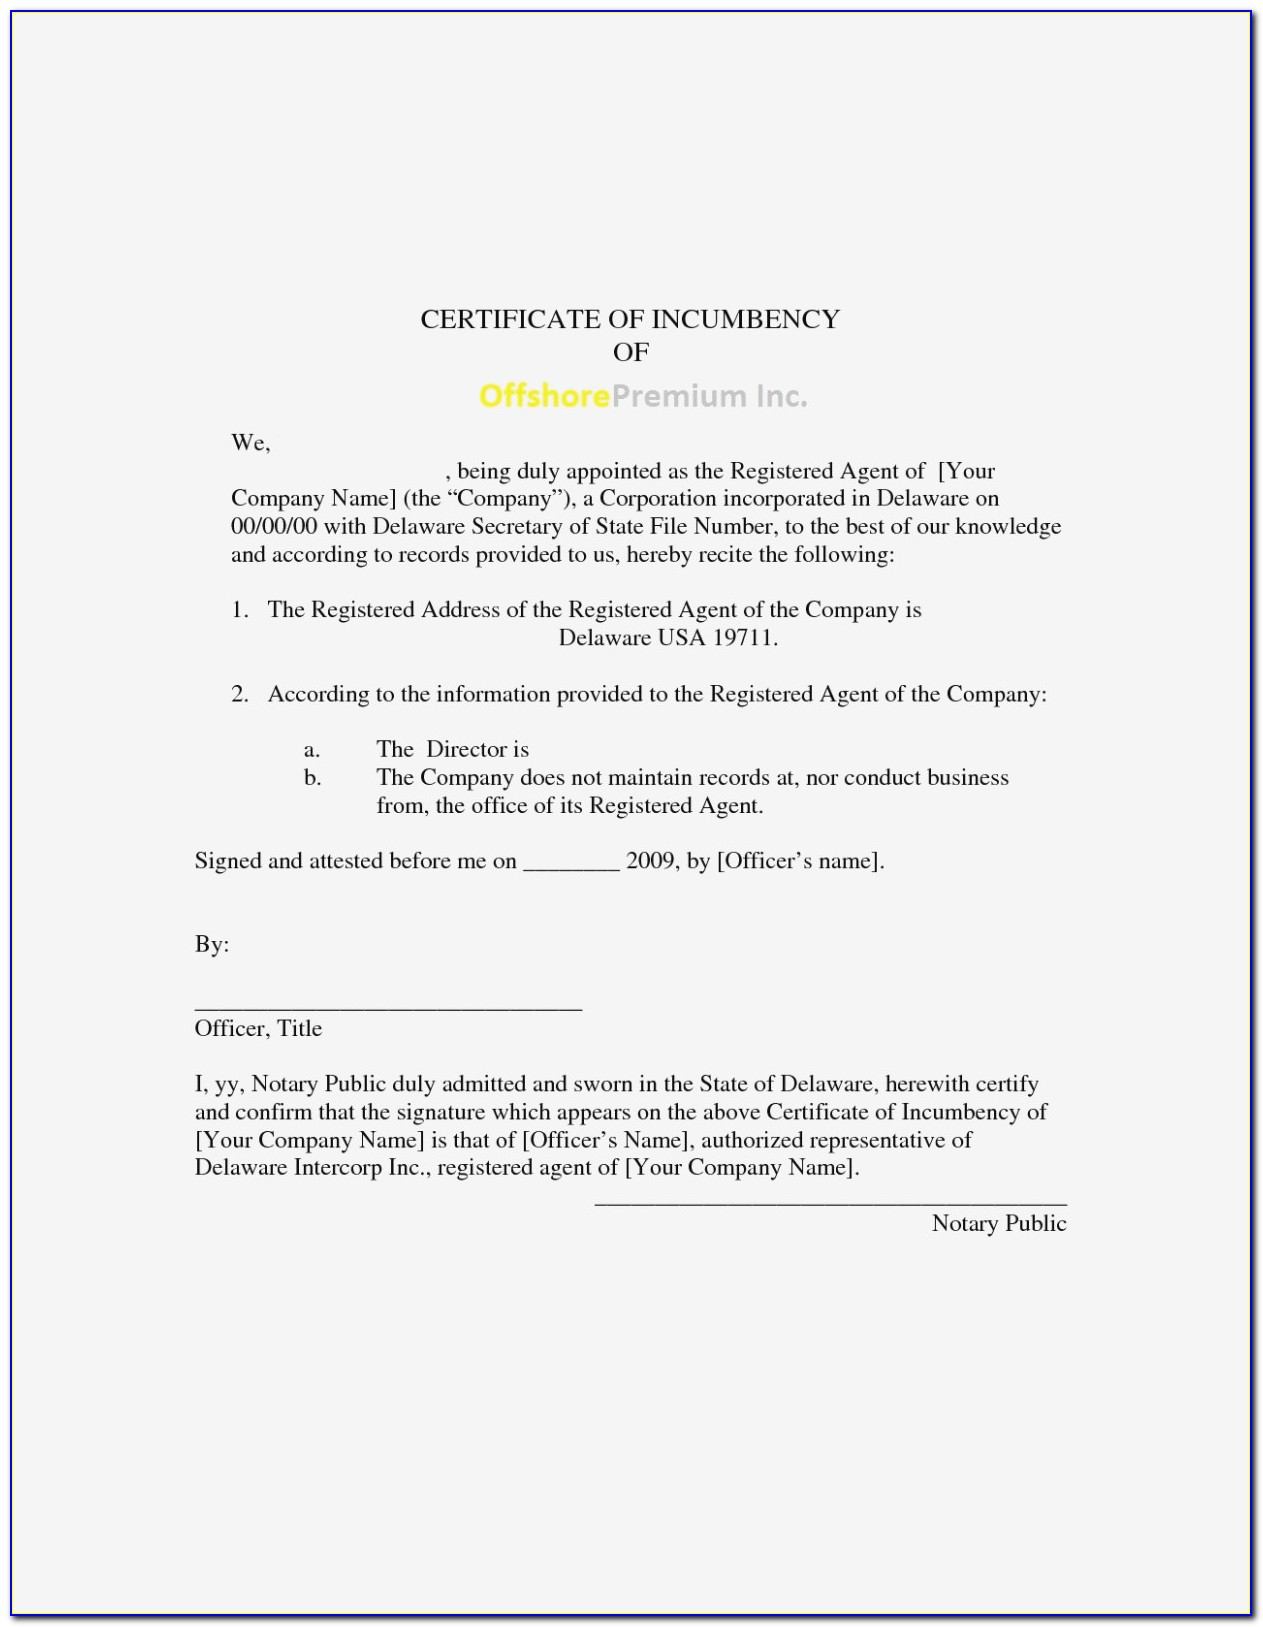 What Is The Purpose Of A Certificate Of Incumbency